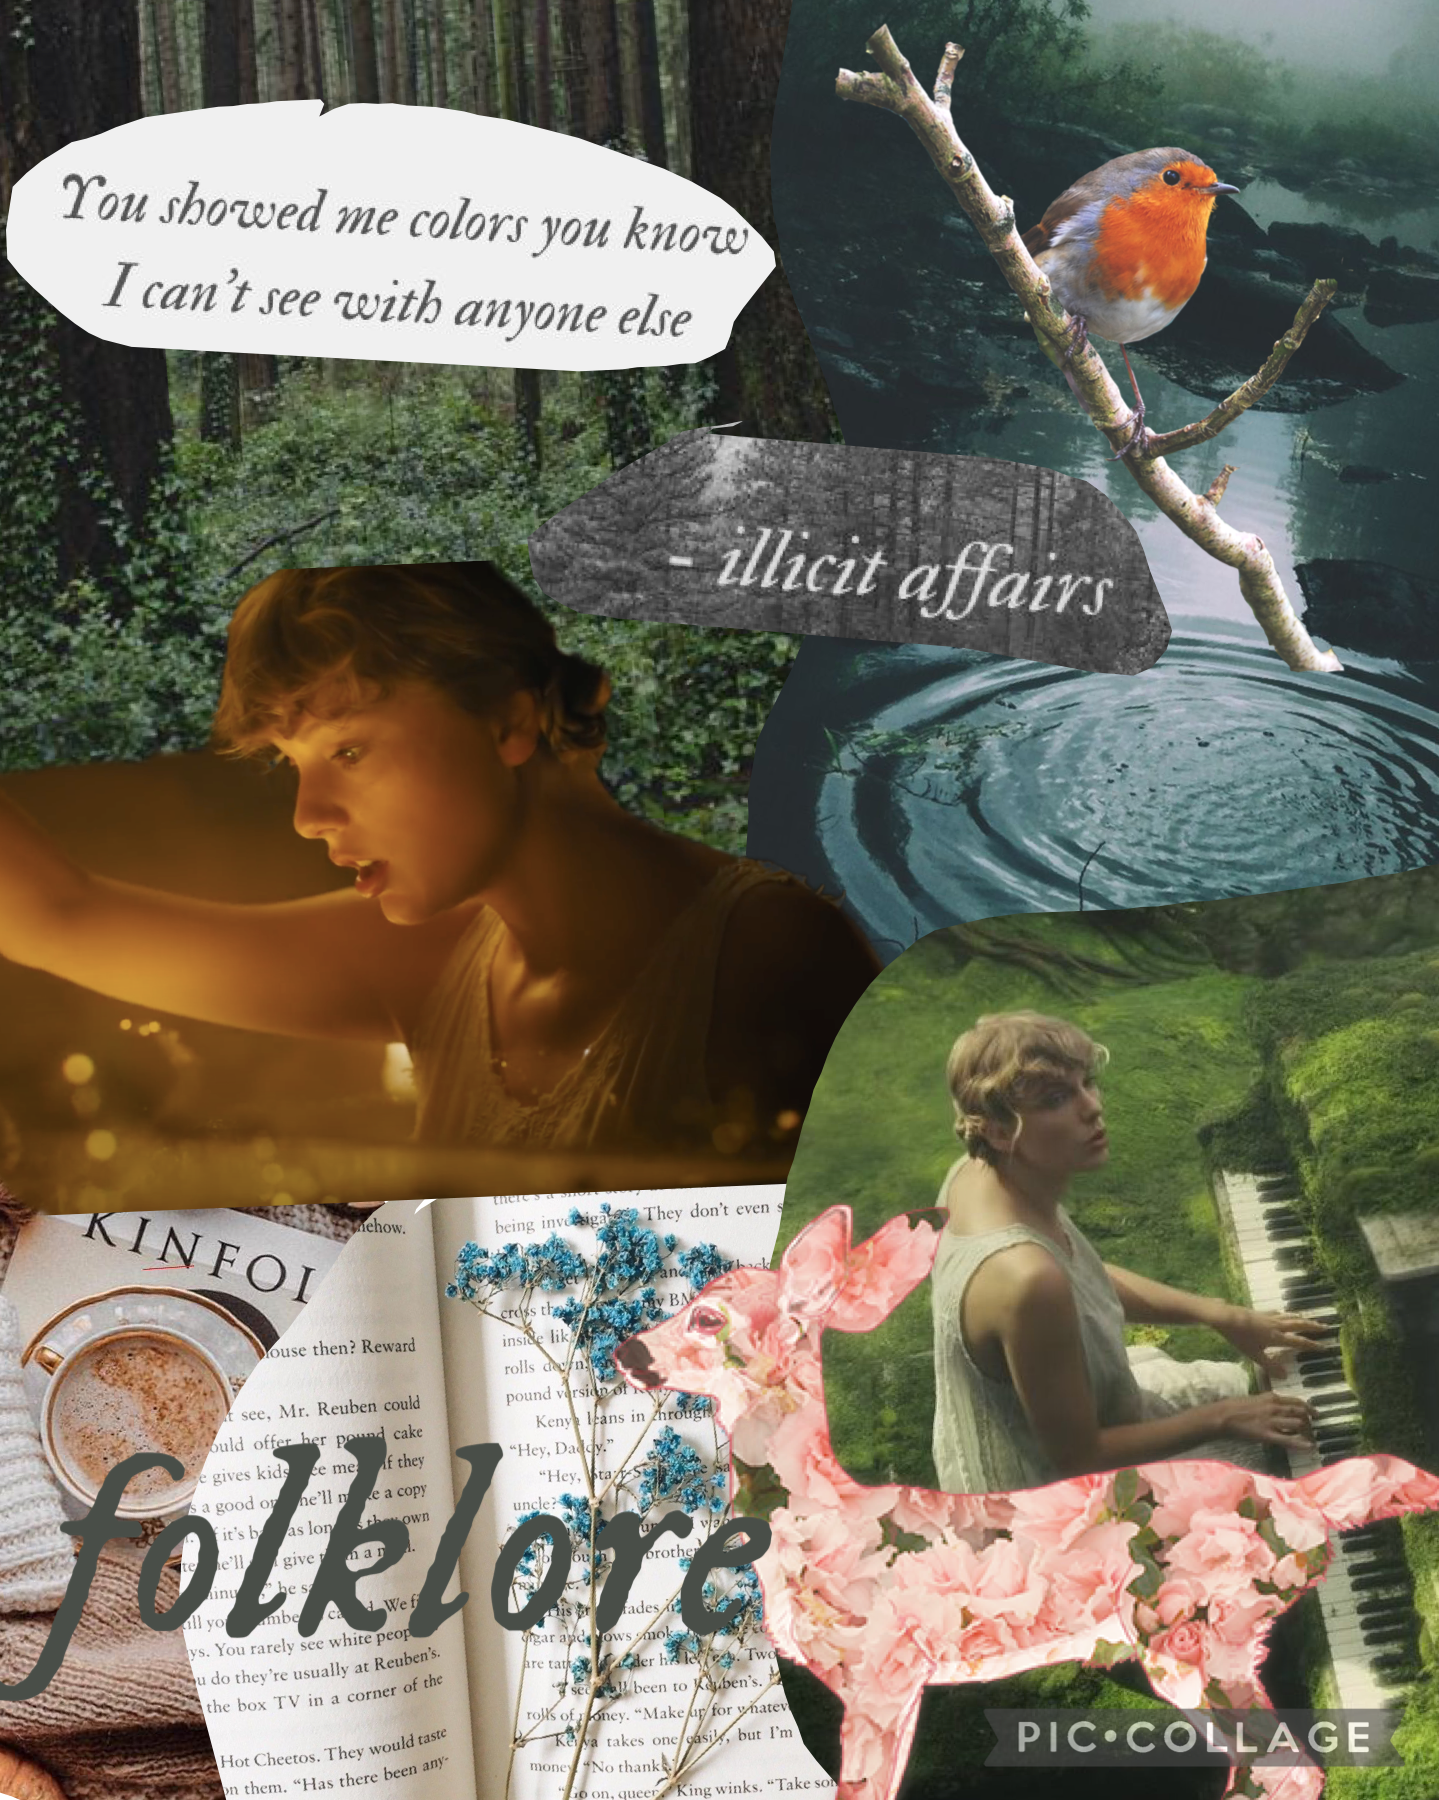 Folklore collage 24.7.21